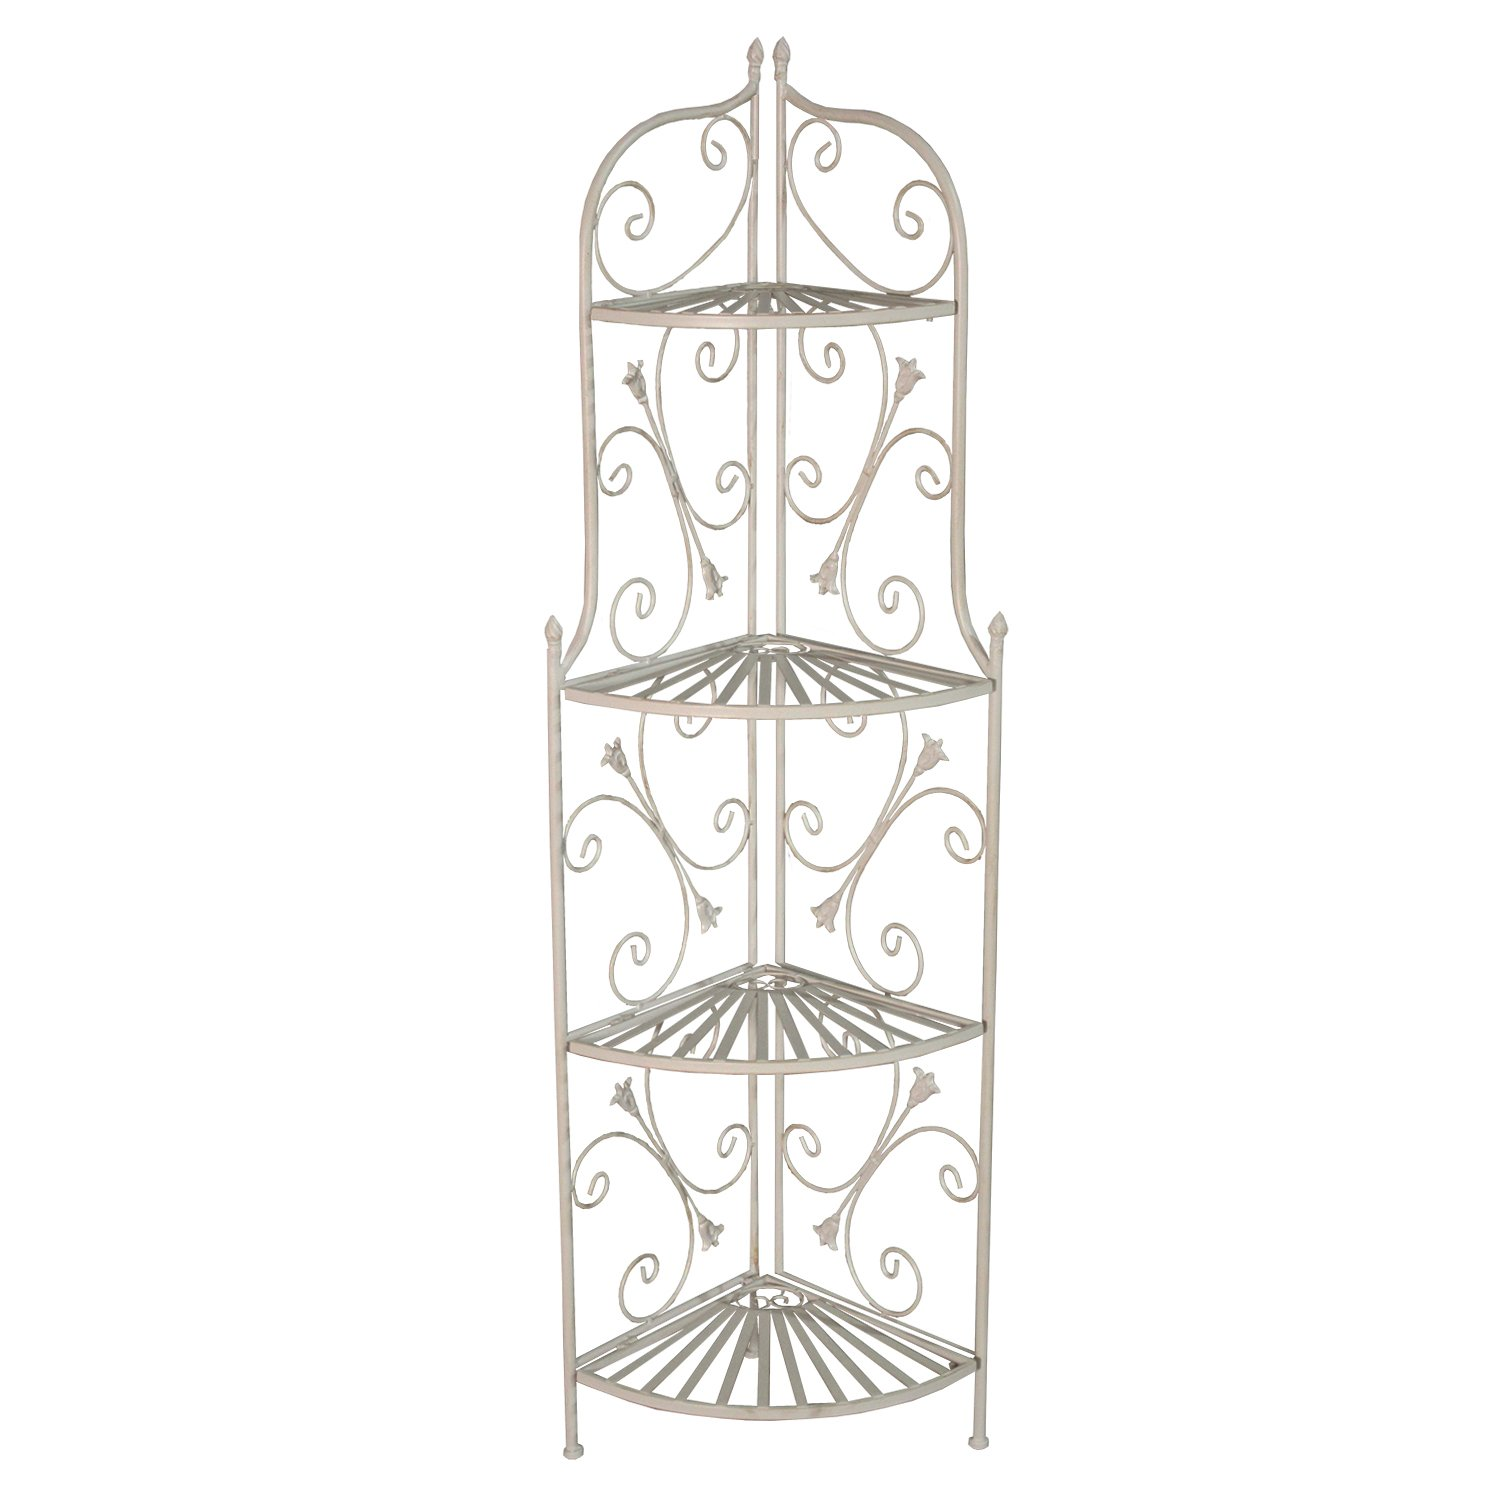 Oakland Living AZ17247-C-SHELF-AC Bakers Rack Corner Shelf, Antique Cream by Oakland Living